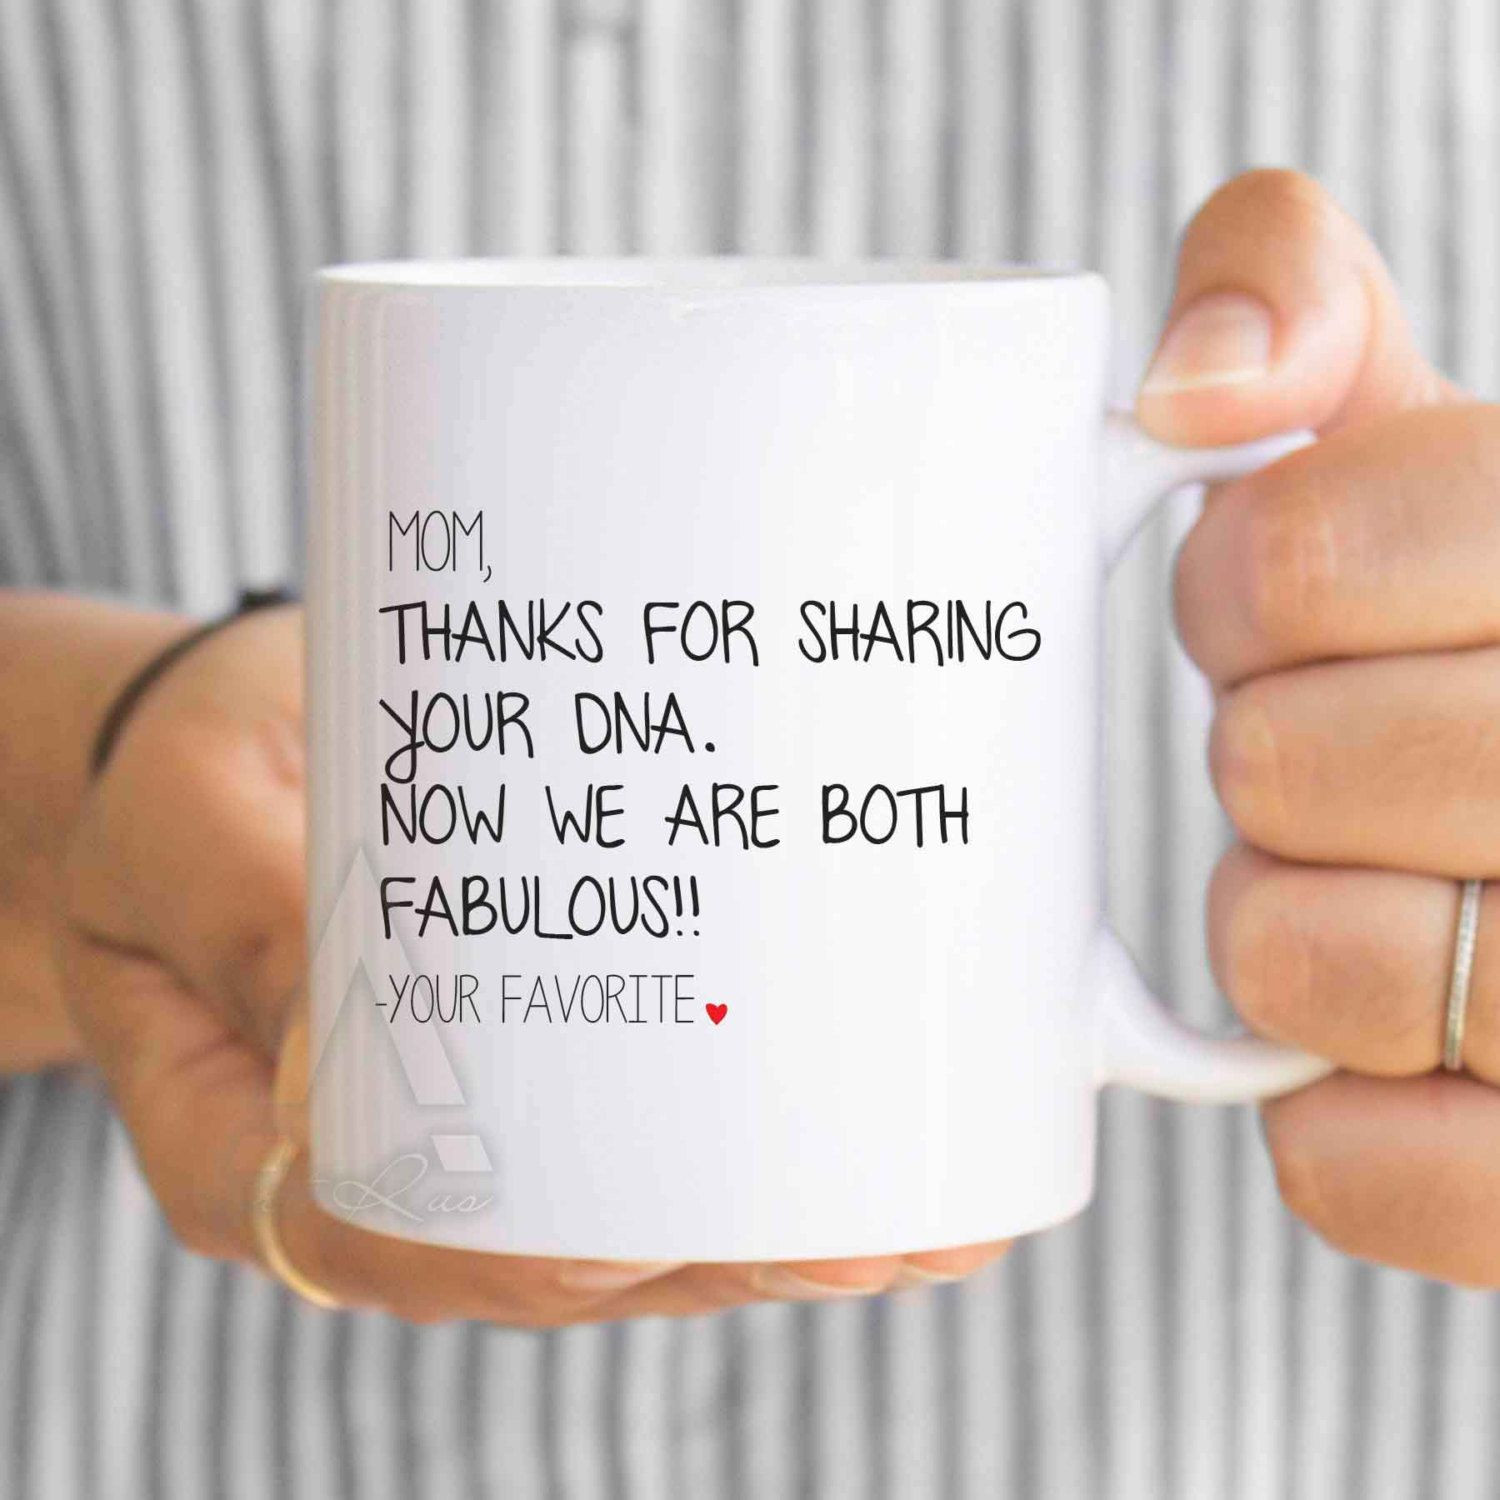 DIY Christmas Gifts For Mom From Daughter  Christmas t from daughter funny coffee mug for mom